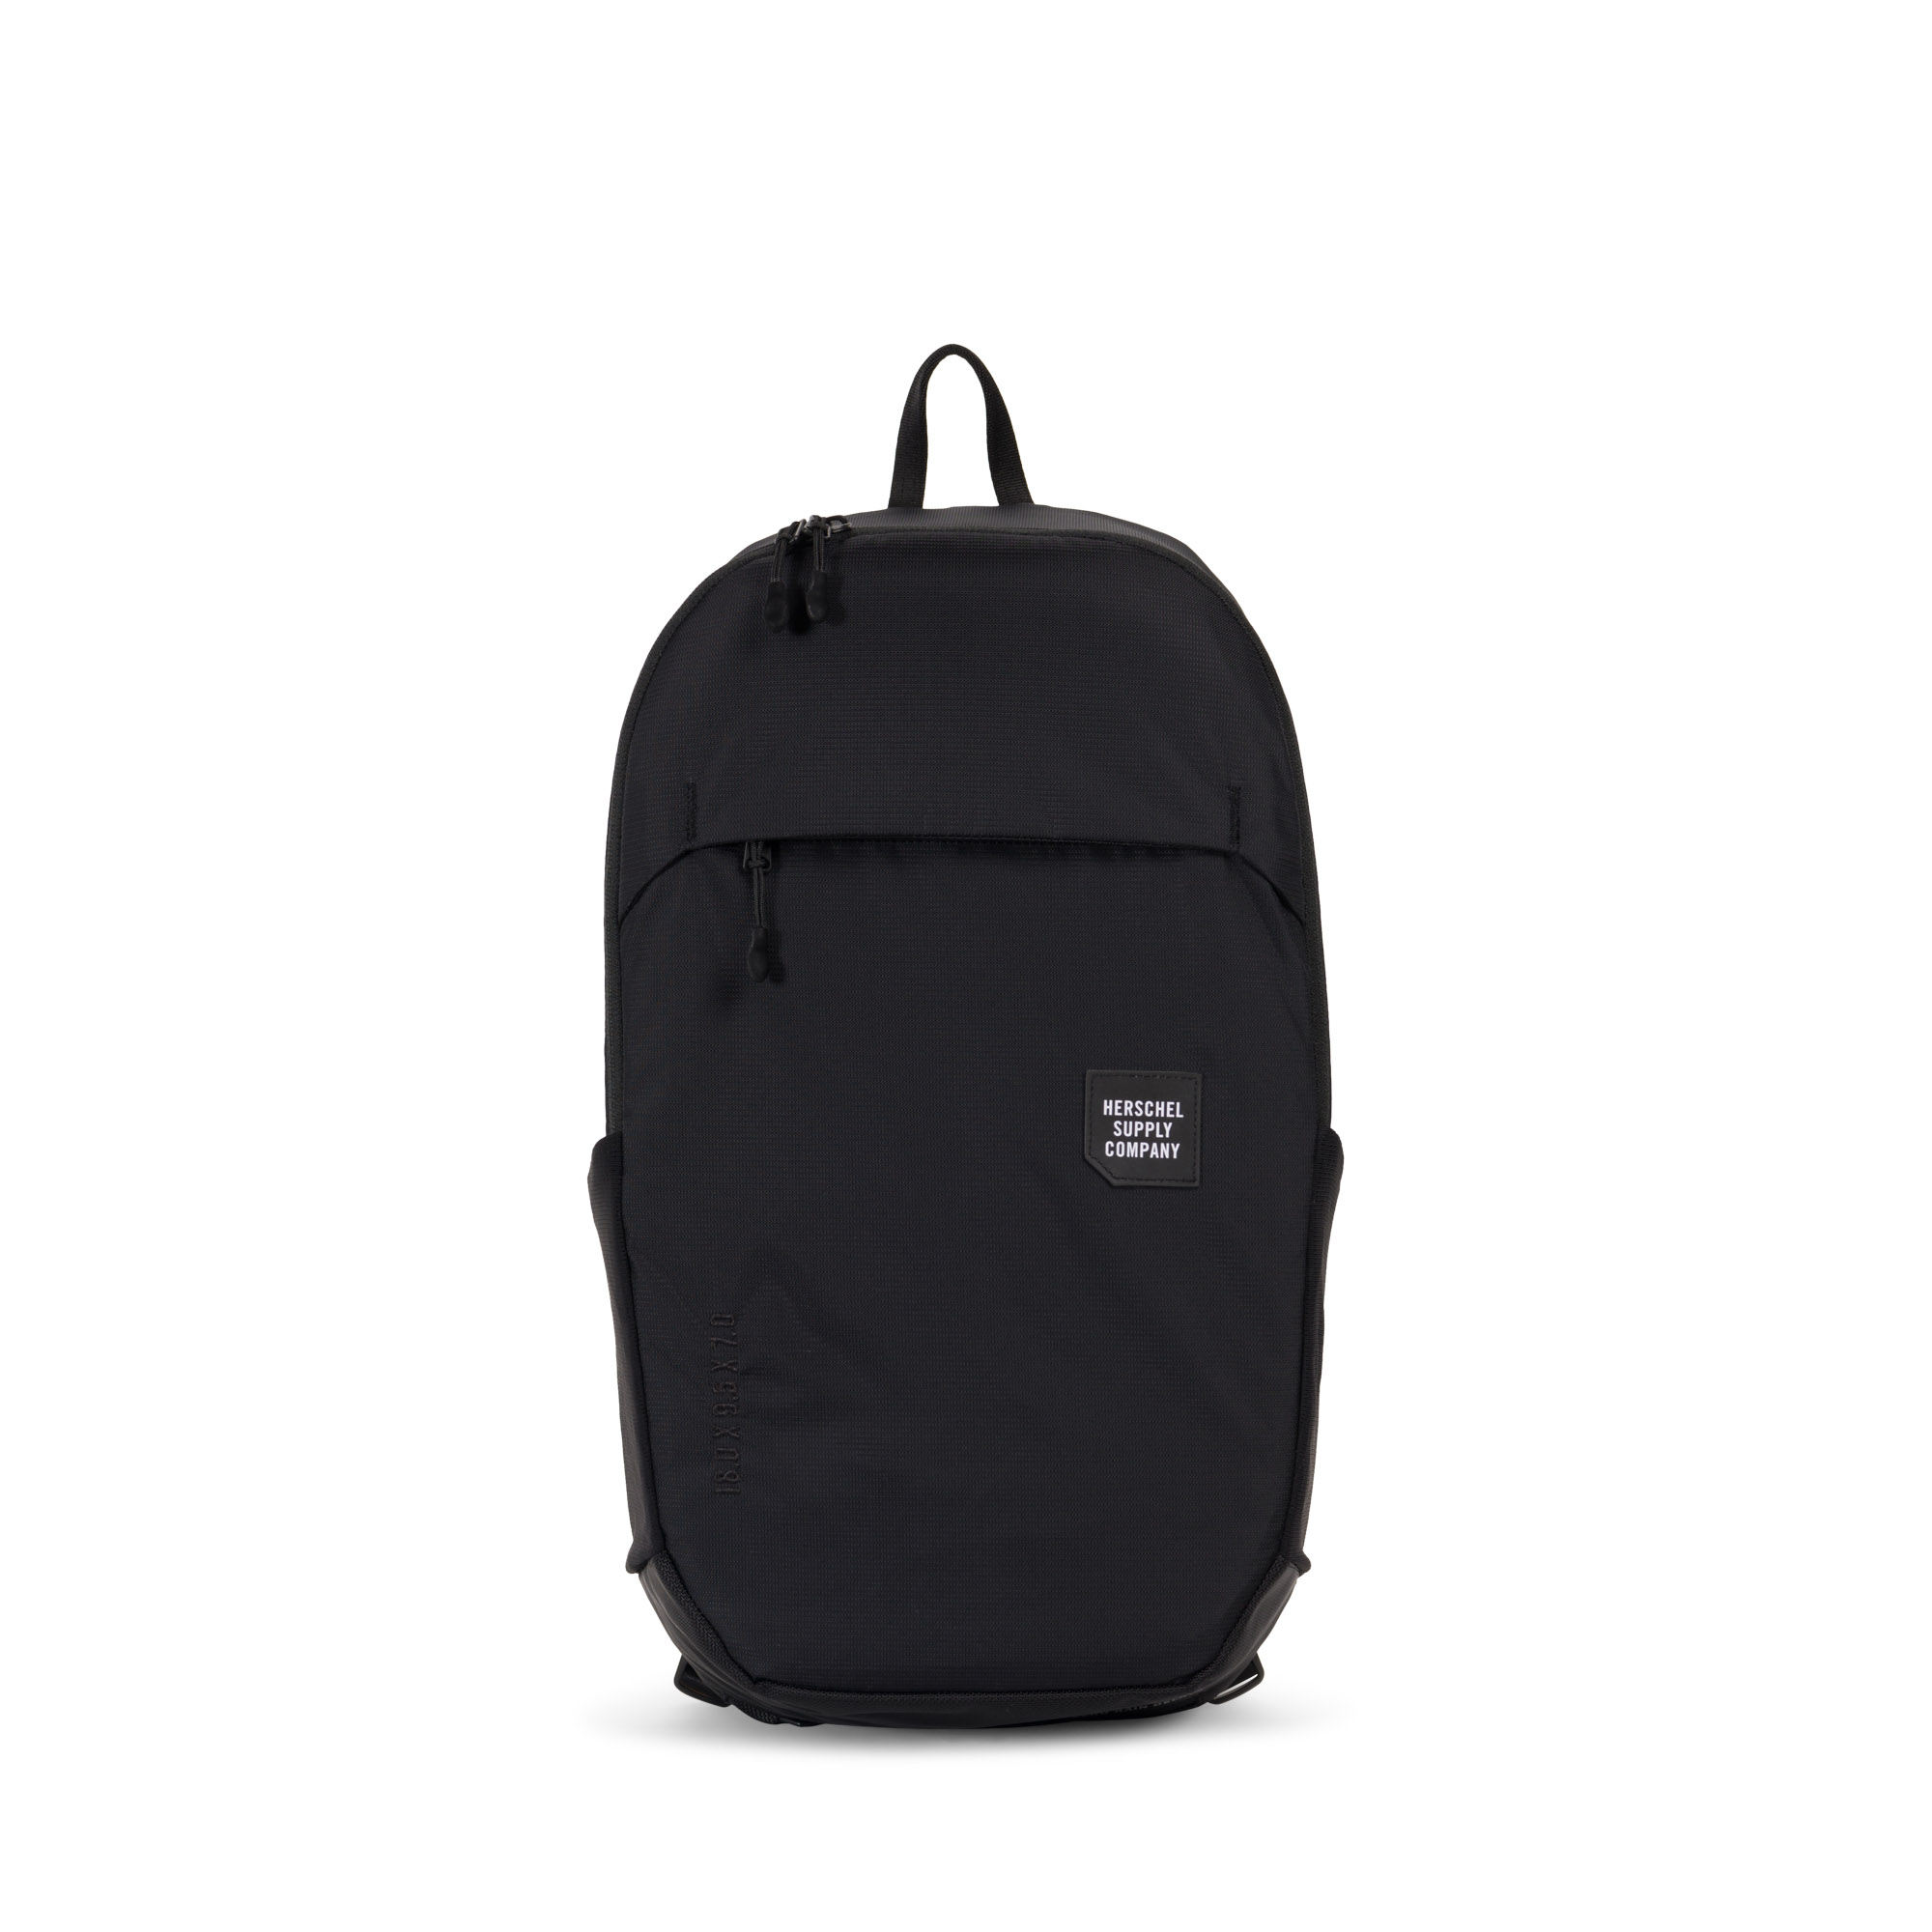 c1cae90a55b Mammoth Backpack Medium